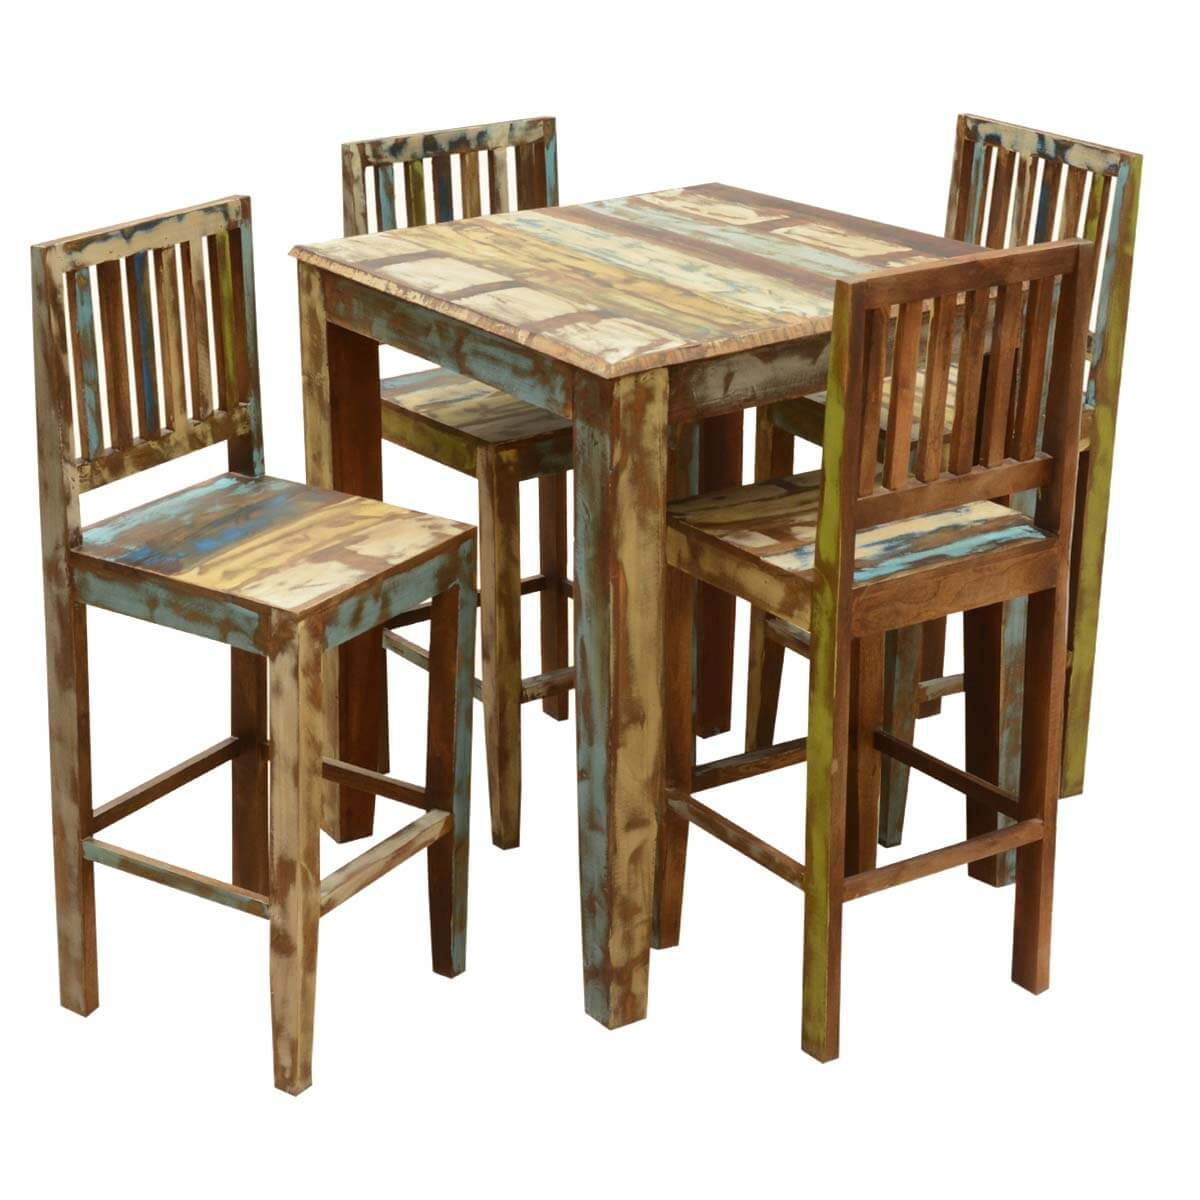 high bar table and chair set cane hanging new zealand appalachian rustic reclaimed wood